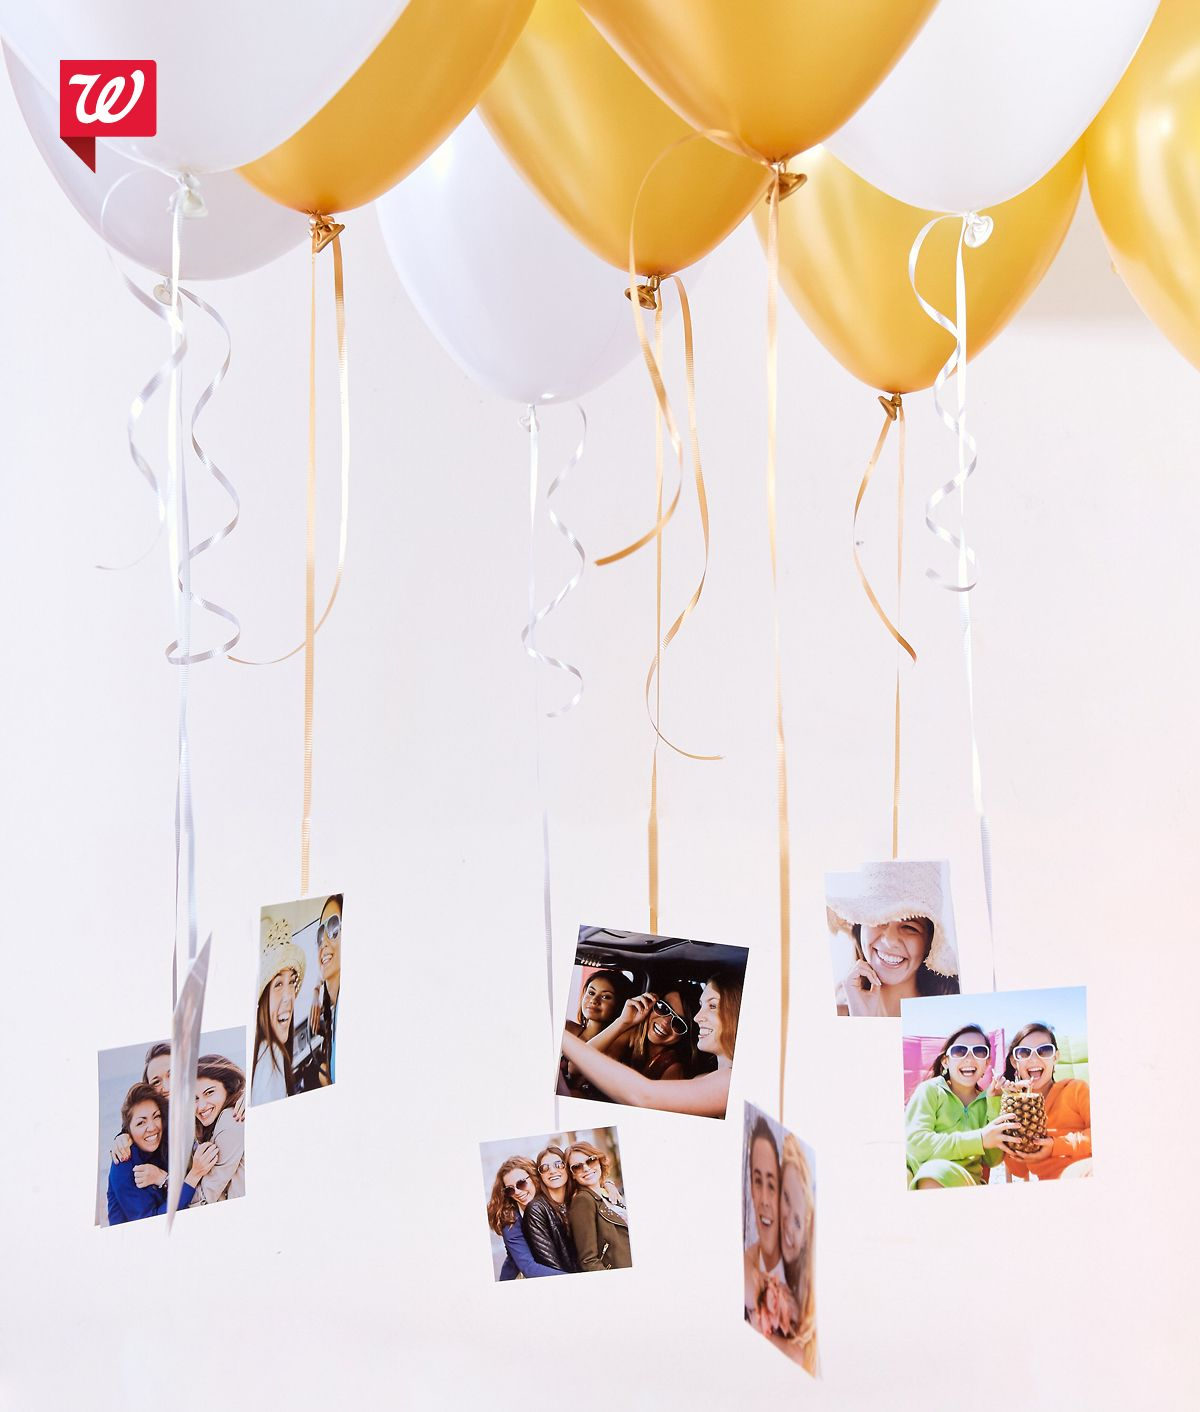 Birthday Photography Tips And Tricks: A Creative Way To Decorate And Share The Memories. Fill A